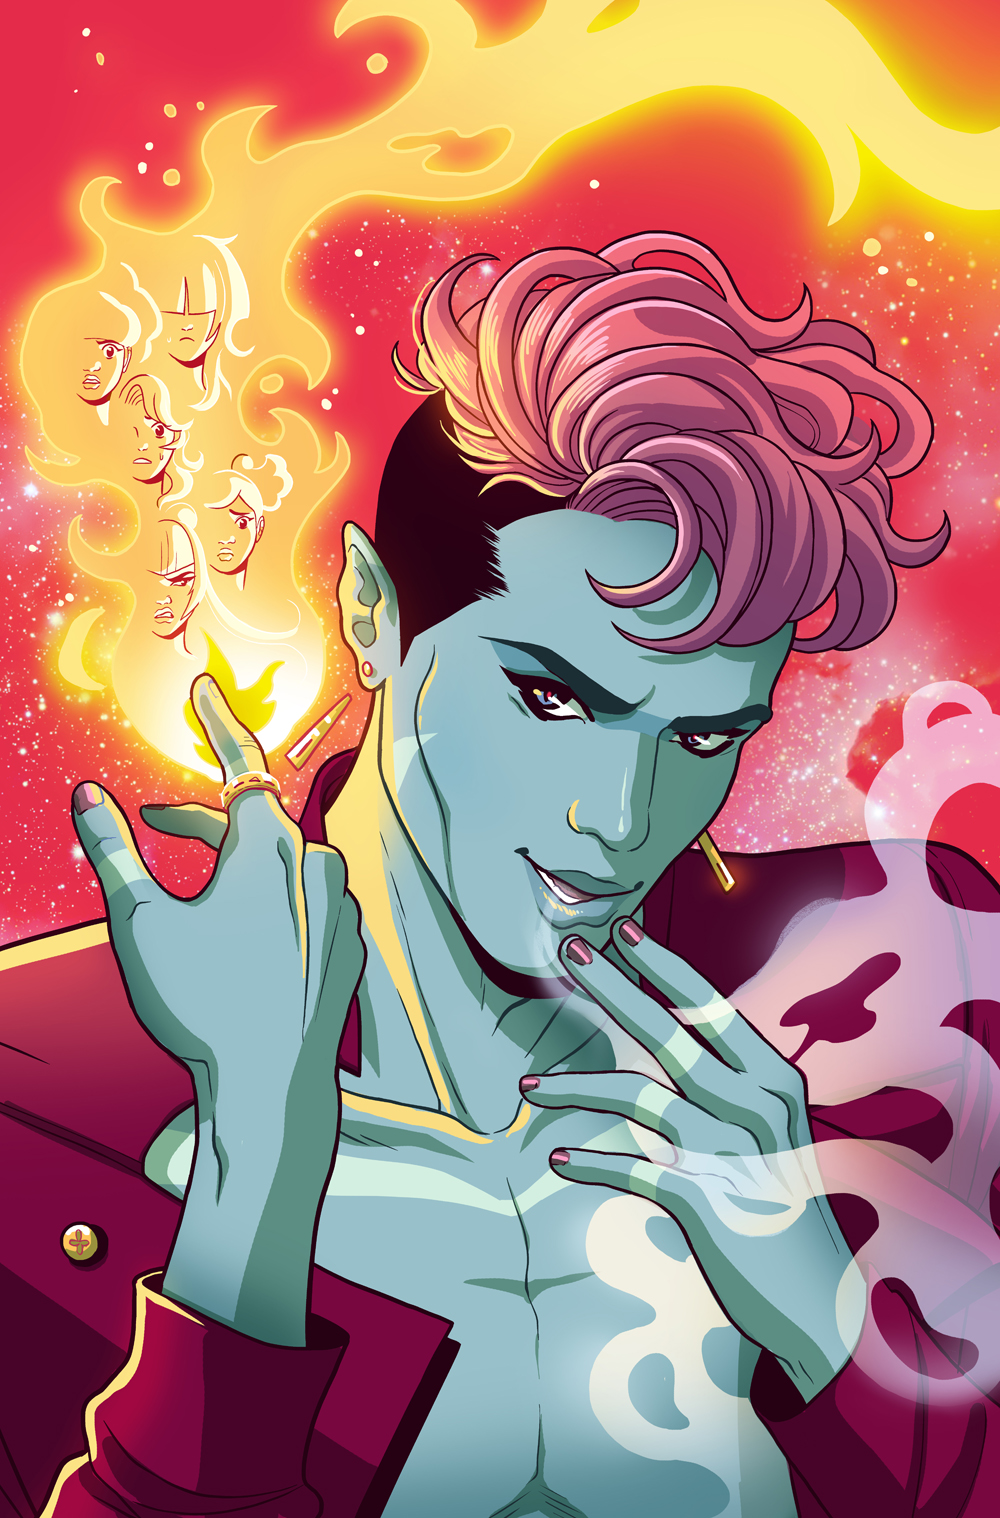 Zodiac Starforce: Cries of the Fire Prince #2 cover- Dark Horse comics